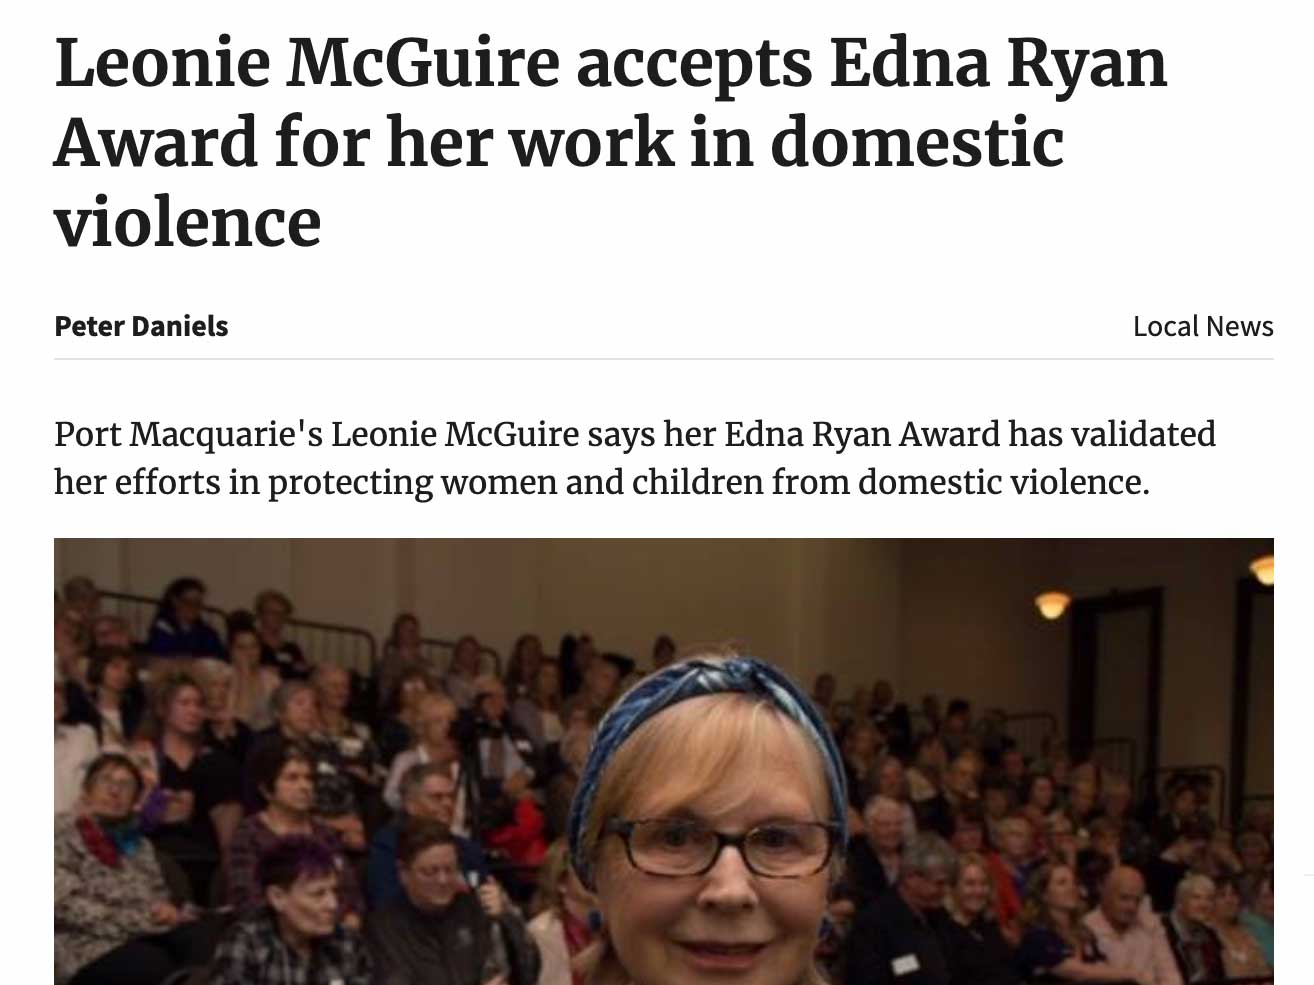 Article headline: Leonie McGuire accepts Edna Ryan Award for her work in domestic violence